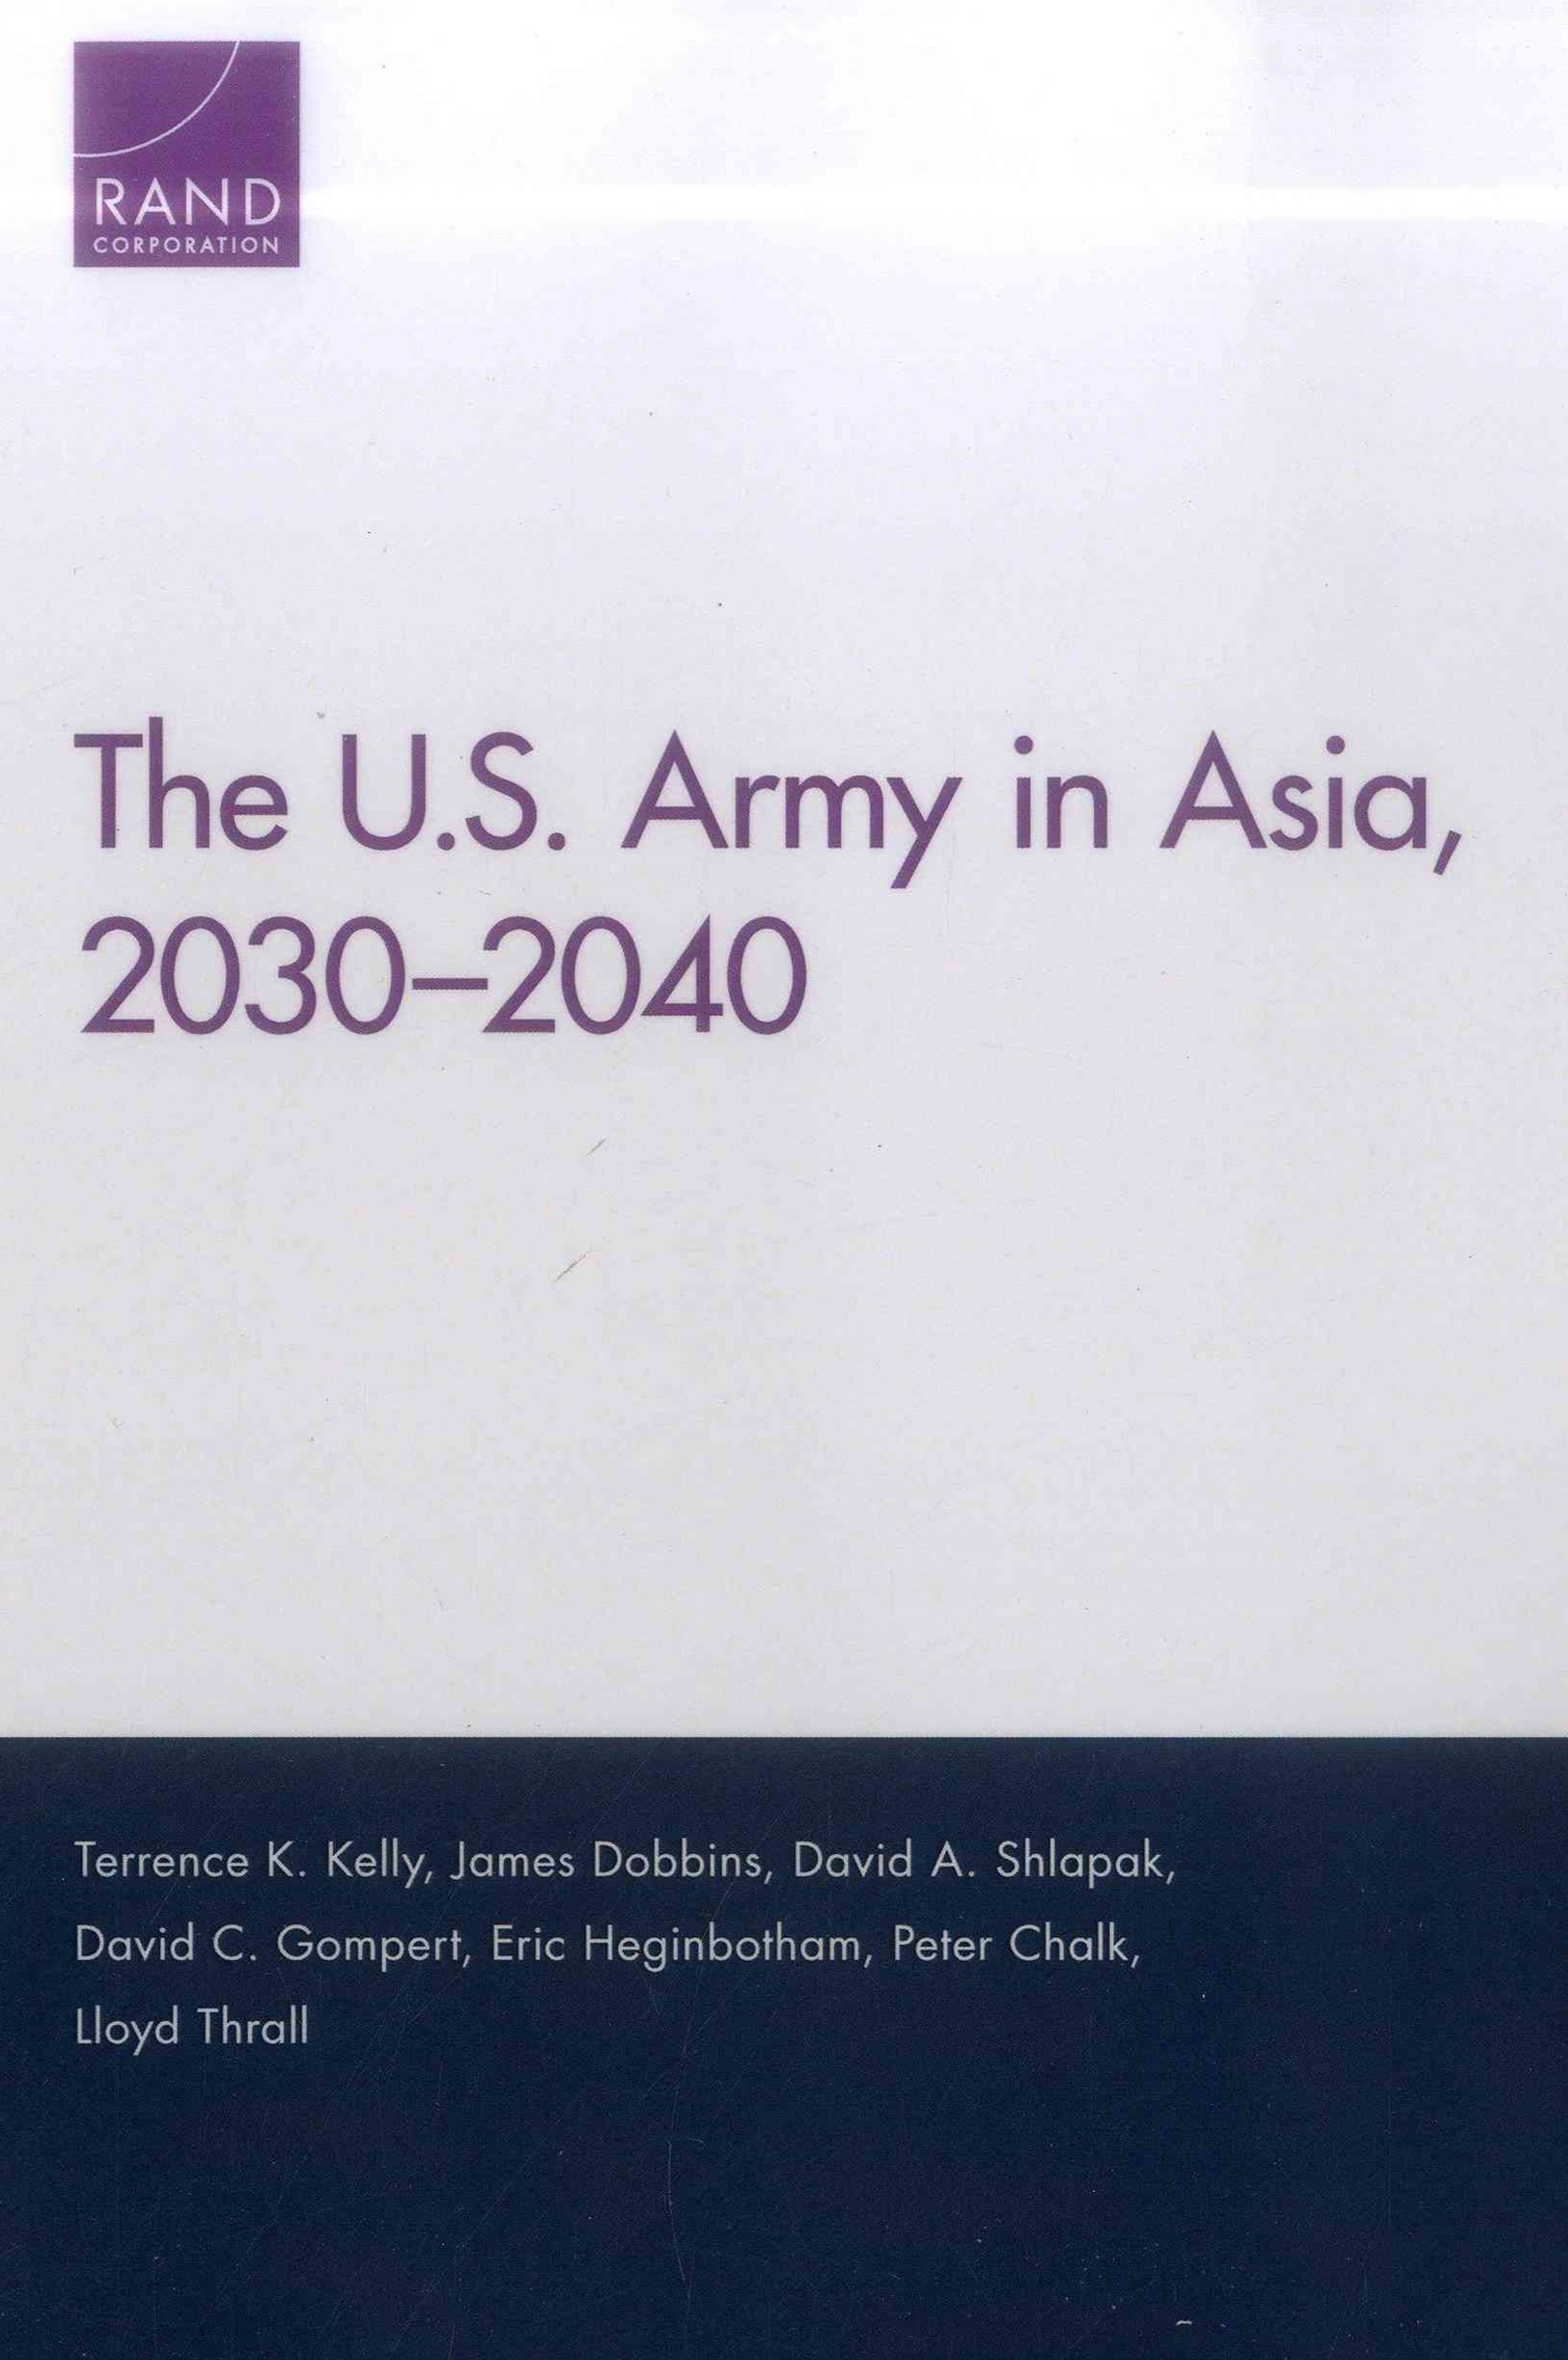 The U. S. Army in Asia, 2030-2040